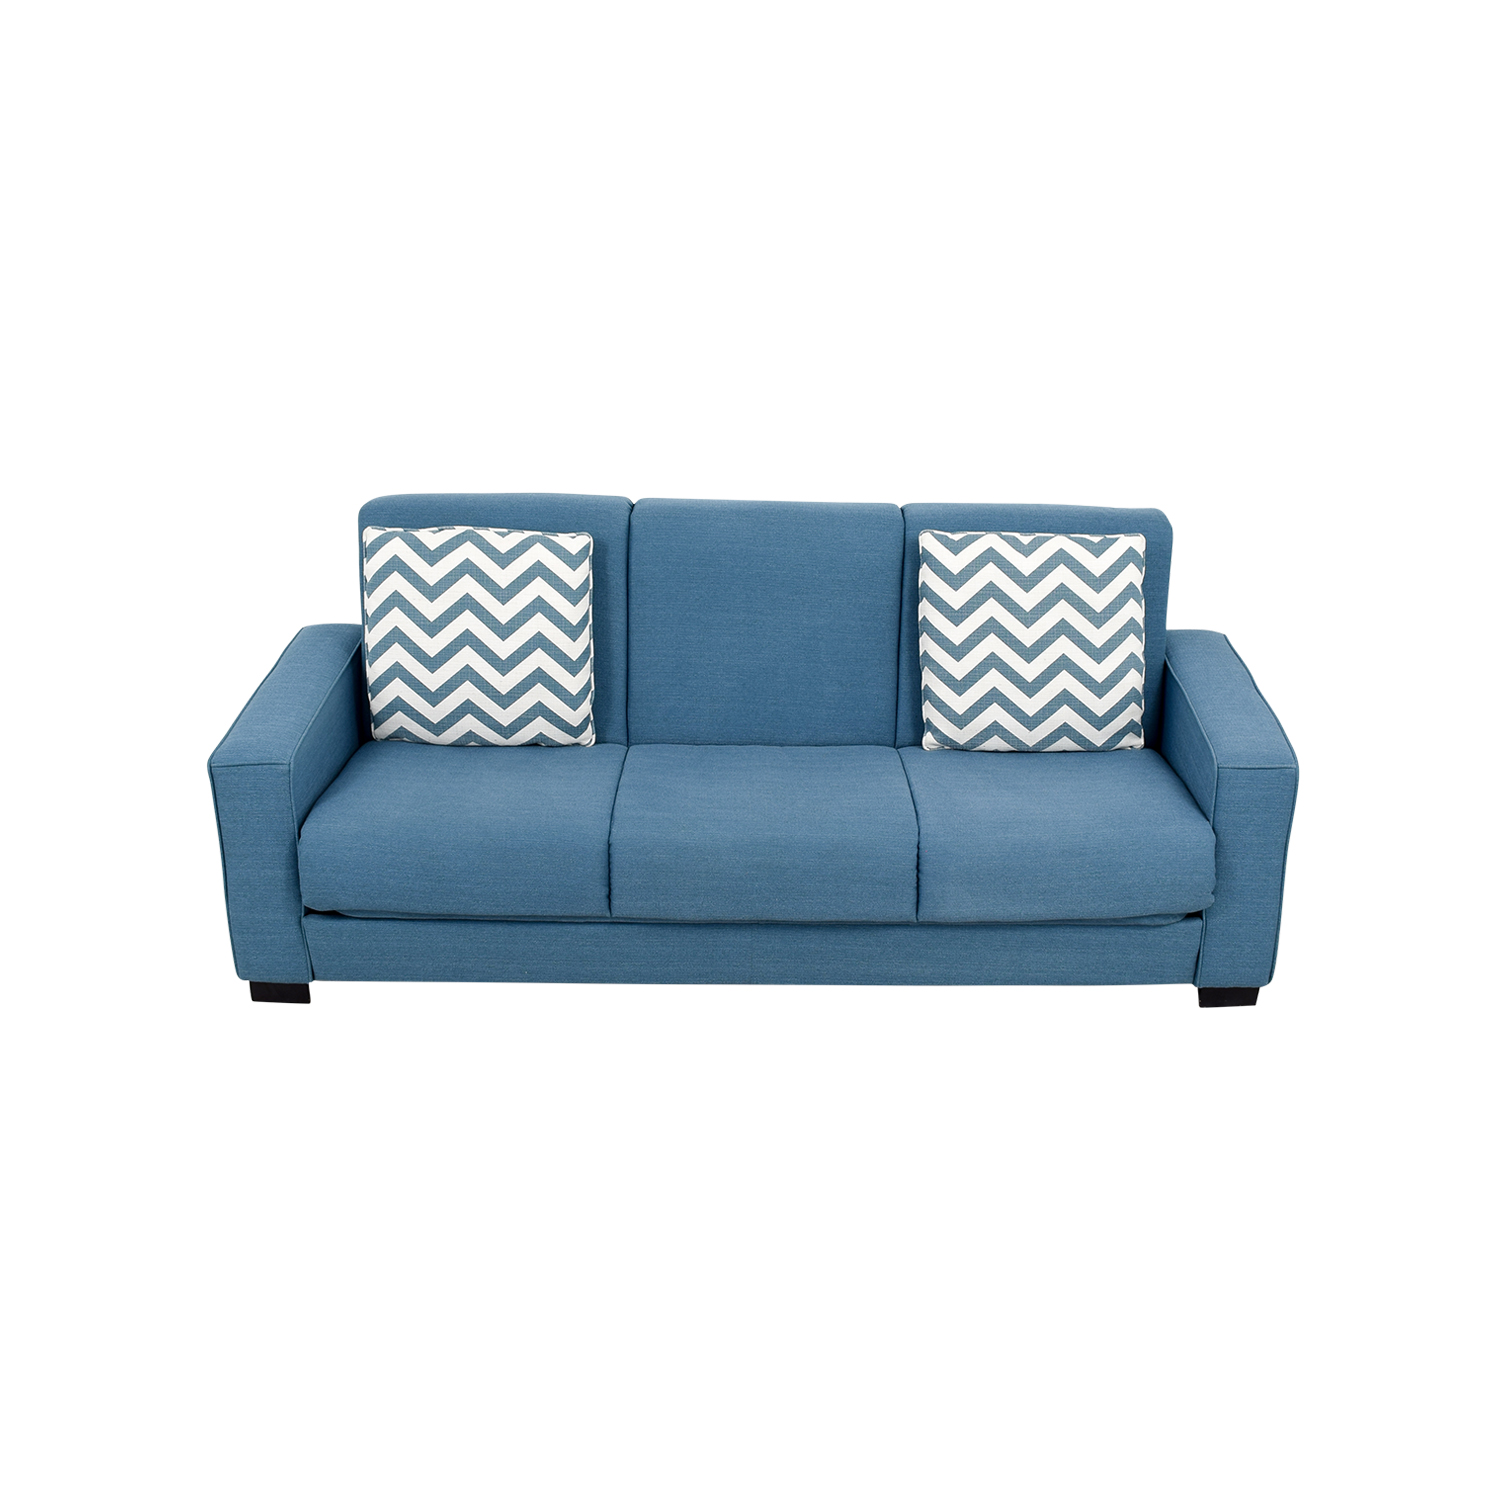 Bed Bath & Beyond Blue Convert-A-Couch Bed Bath and Beyond